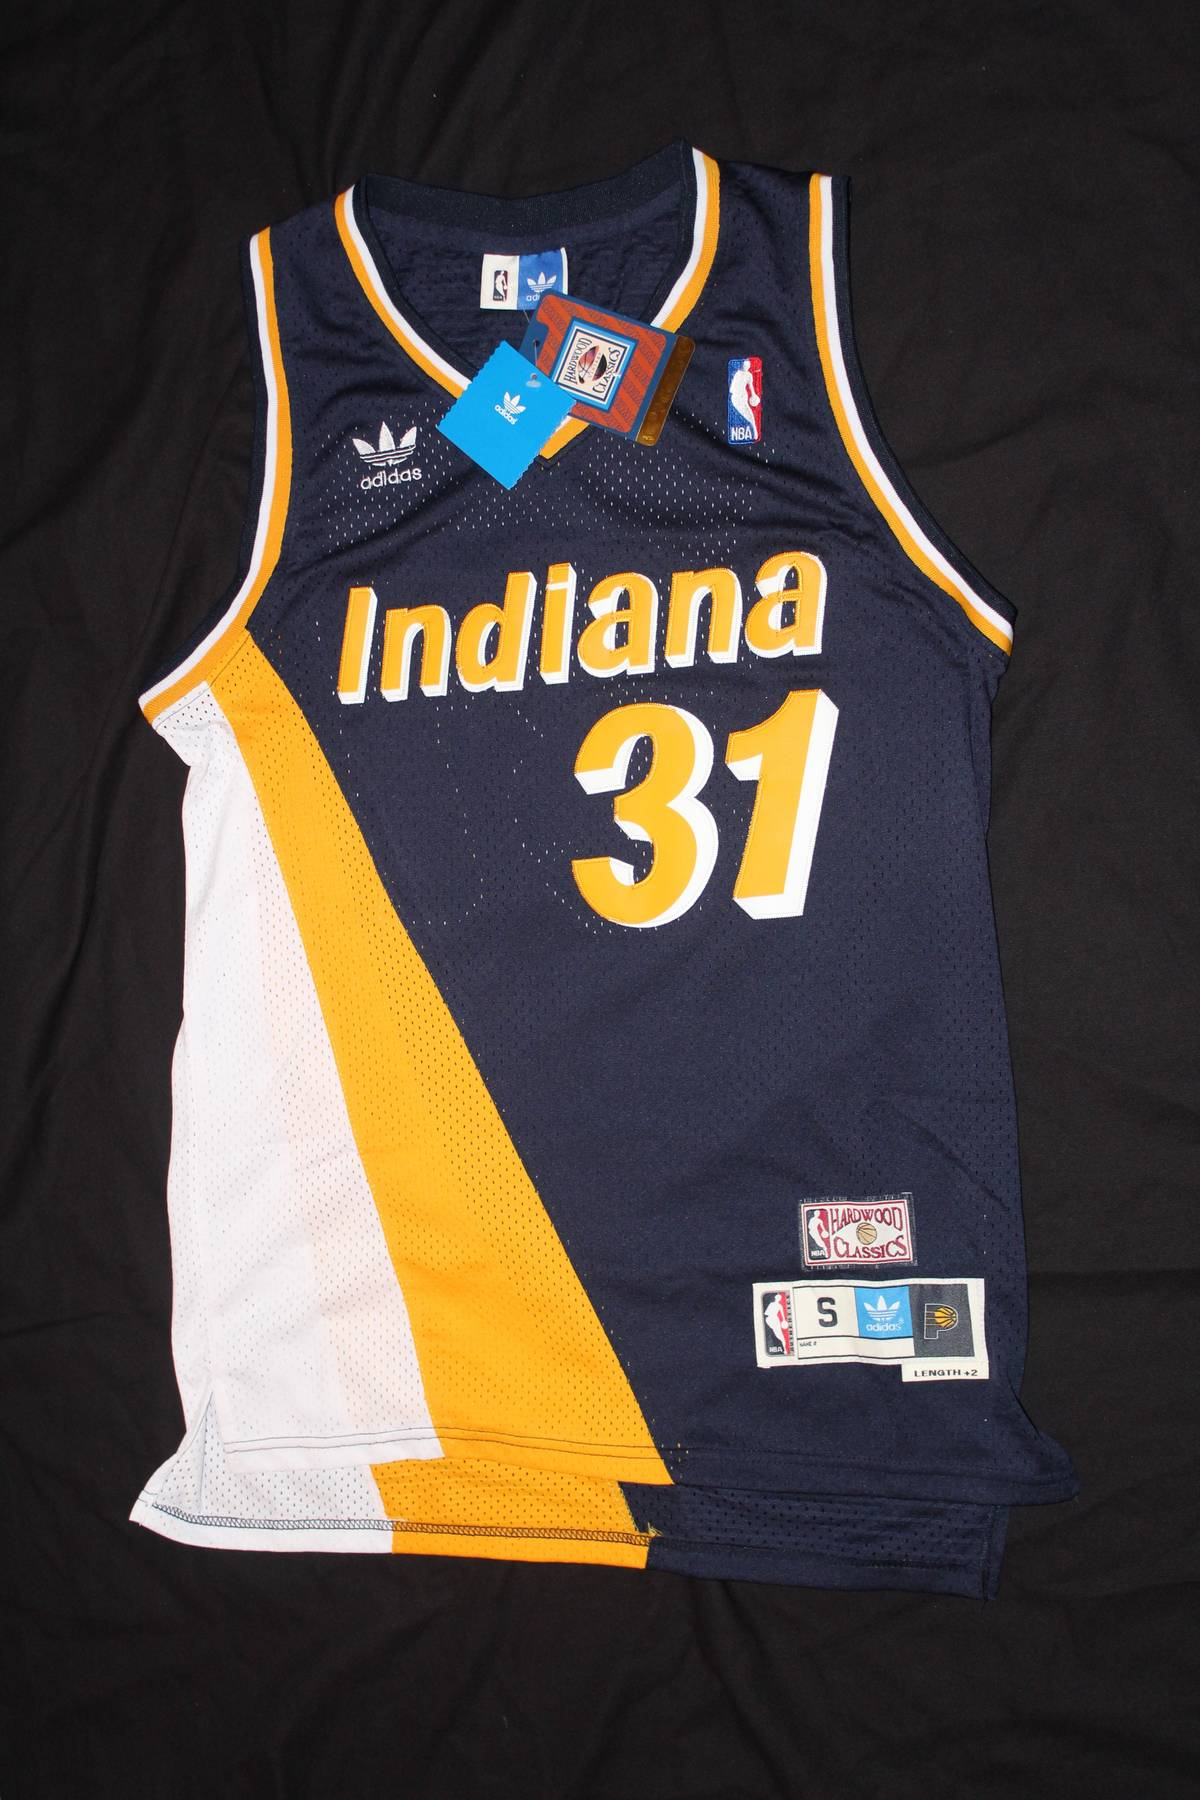 sports shoes 833a1 1d27f Adidas Adidas Throwback Reggie Miller Jersey Size S $63